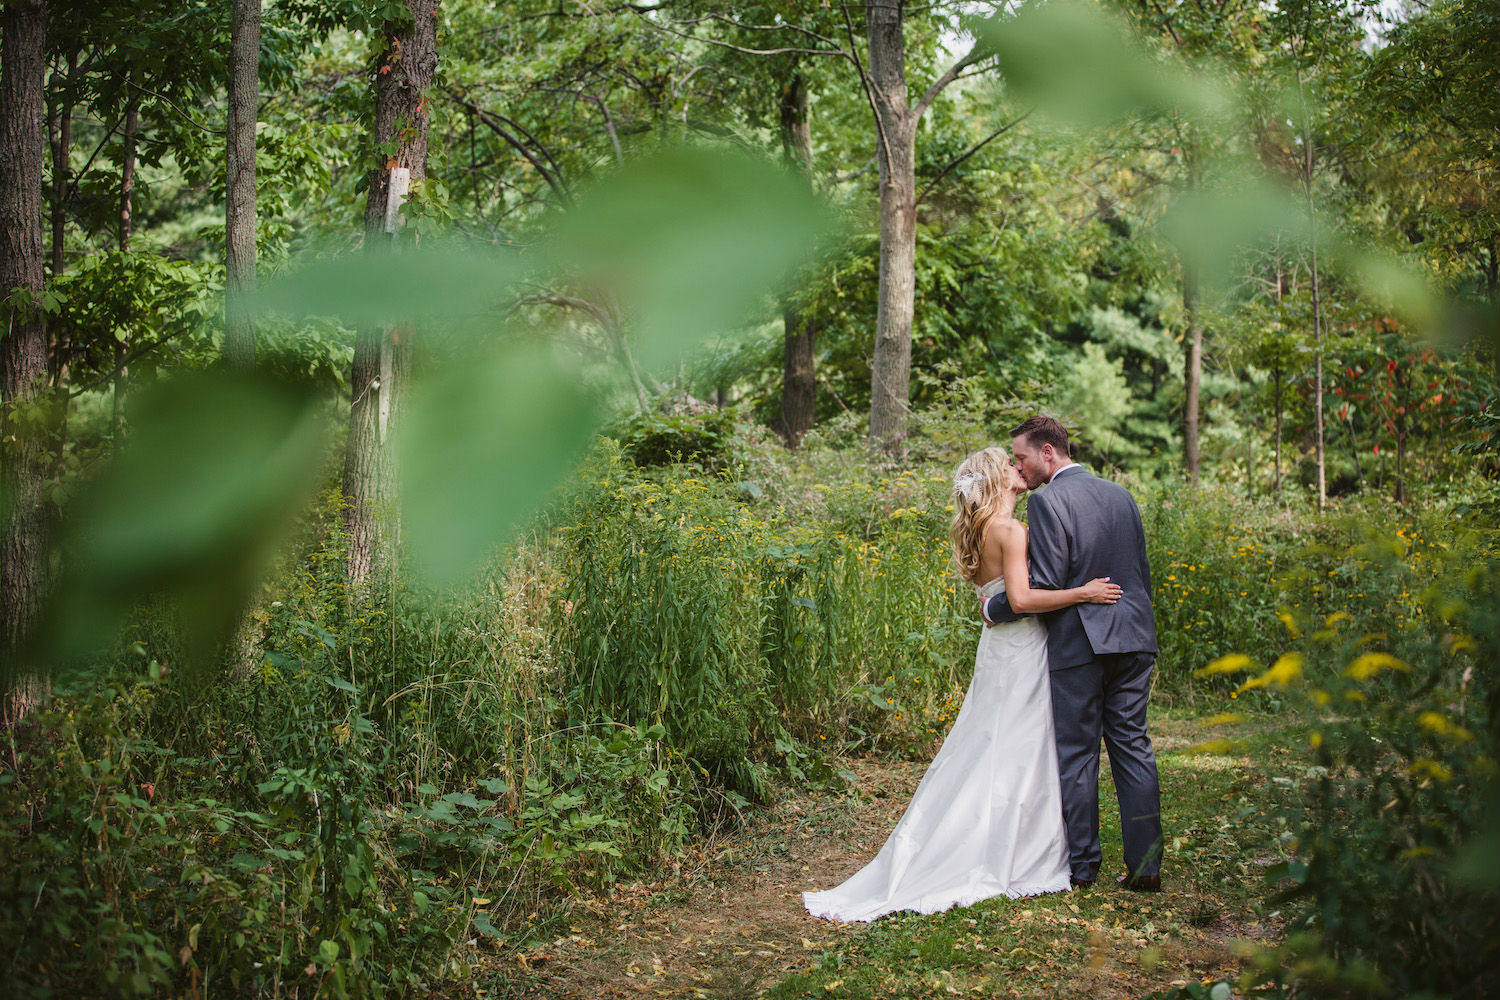 """""""It was unreasonably beautiful, magical, and went so smoothly."""" - — HOLLY MILES, BEAMER BRIDE SEPTEMBER 2017"""